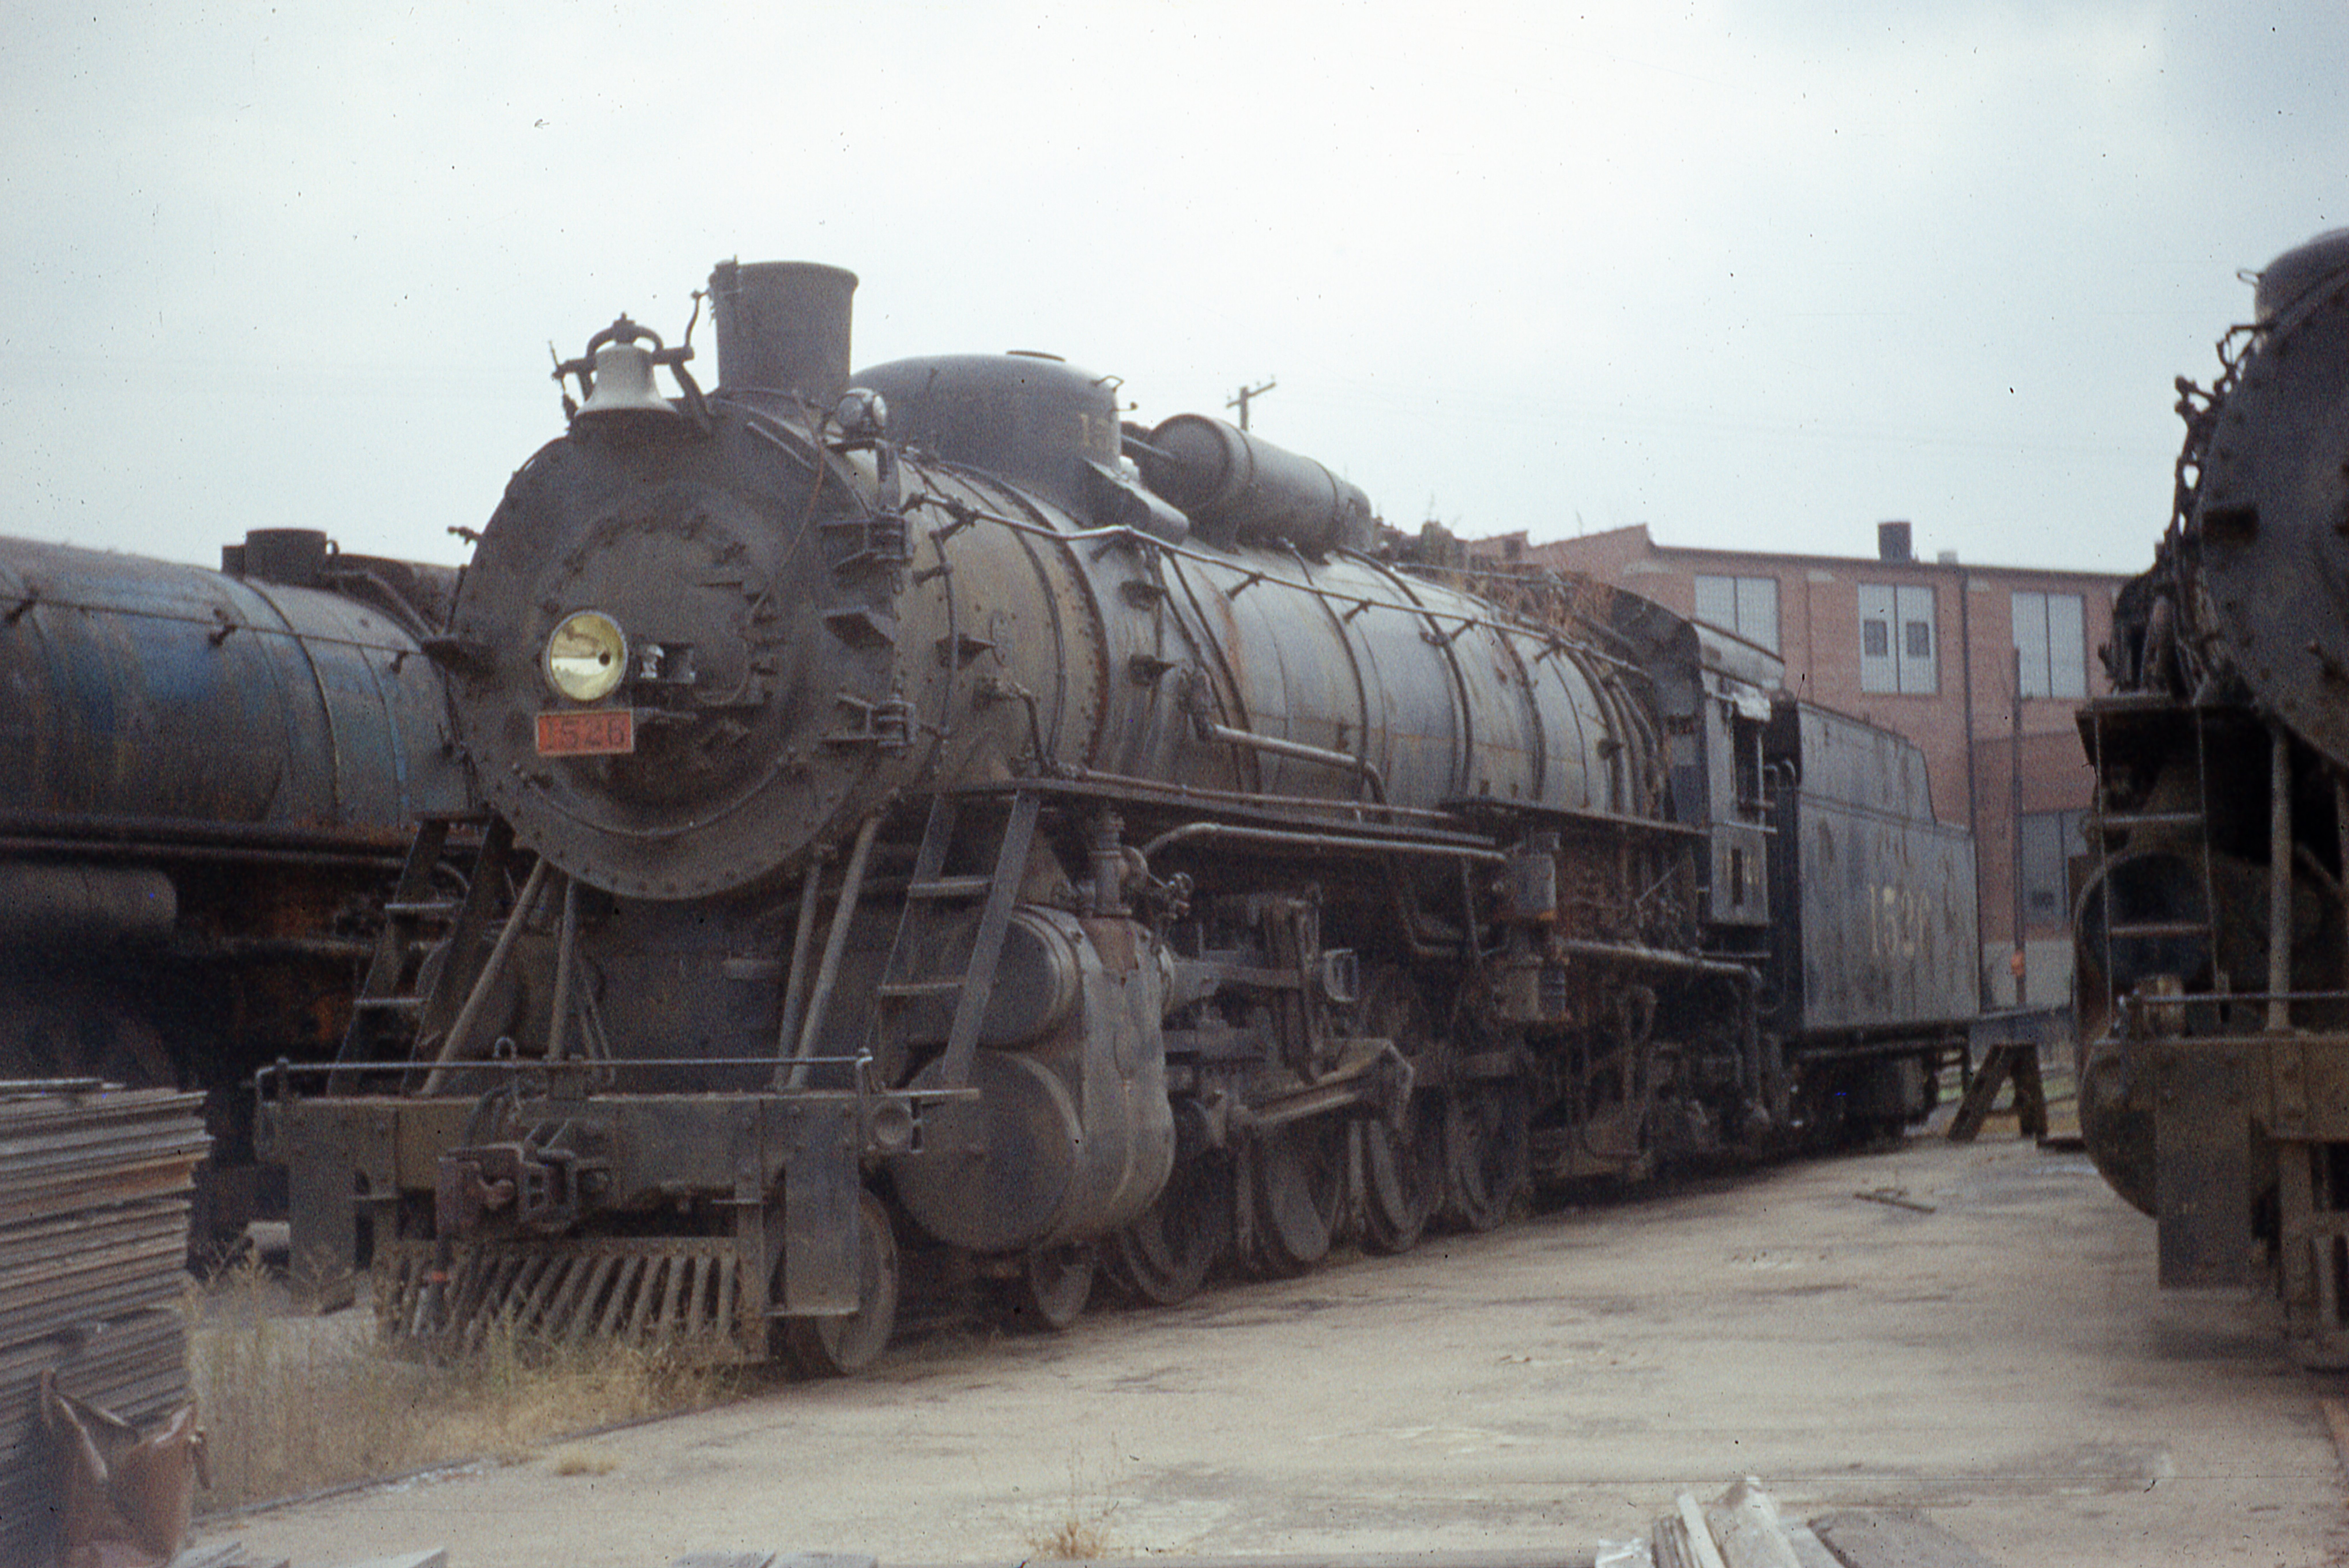 4-8-2 1526 at Lindenwood Yard, St. Louis, Missouri on November 2, 1958